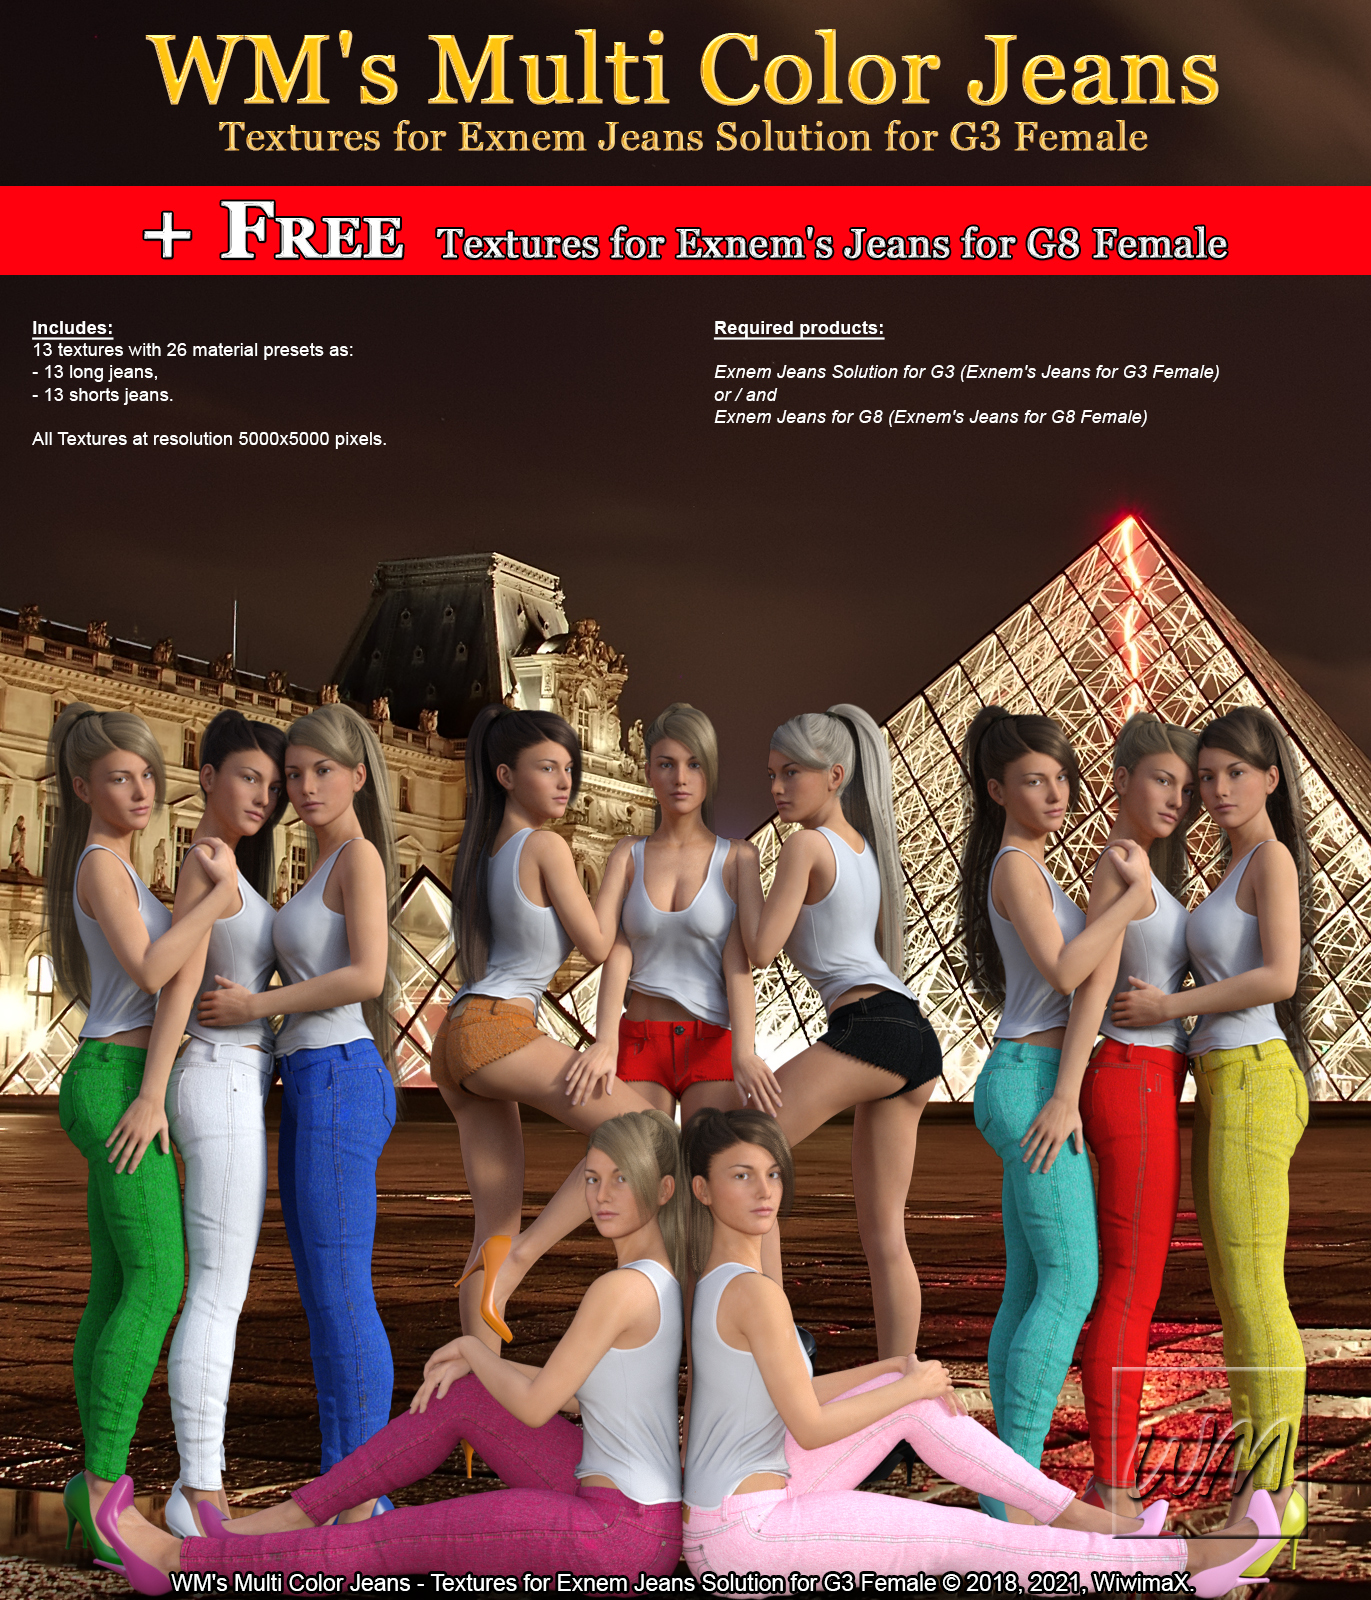 WM's Multi Color Jeans - Textures for Exnem Jeans Solution for G3 Female